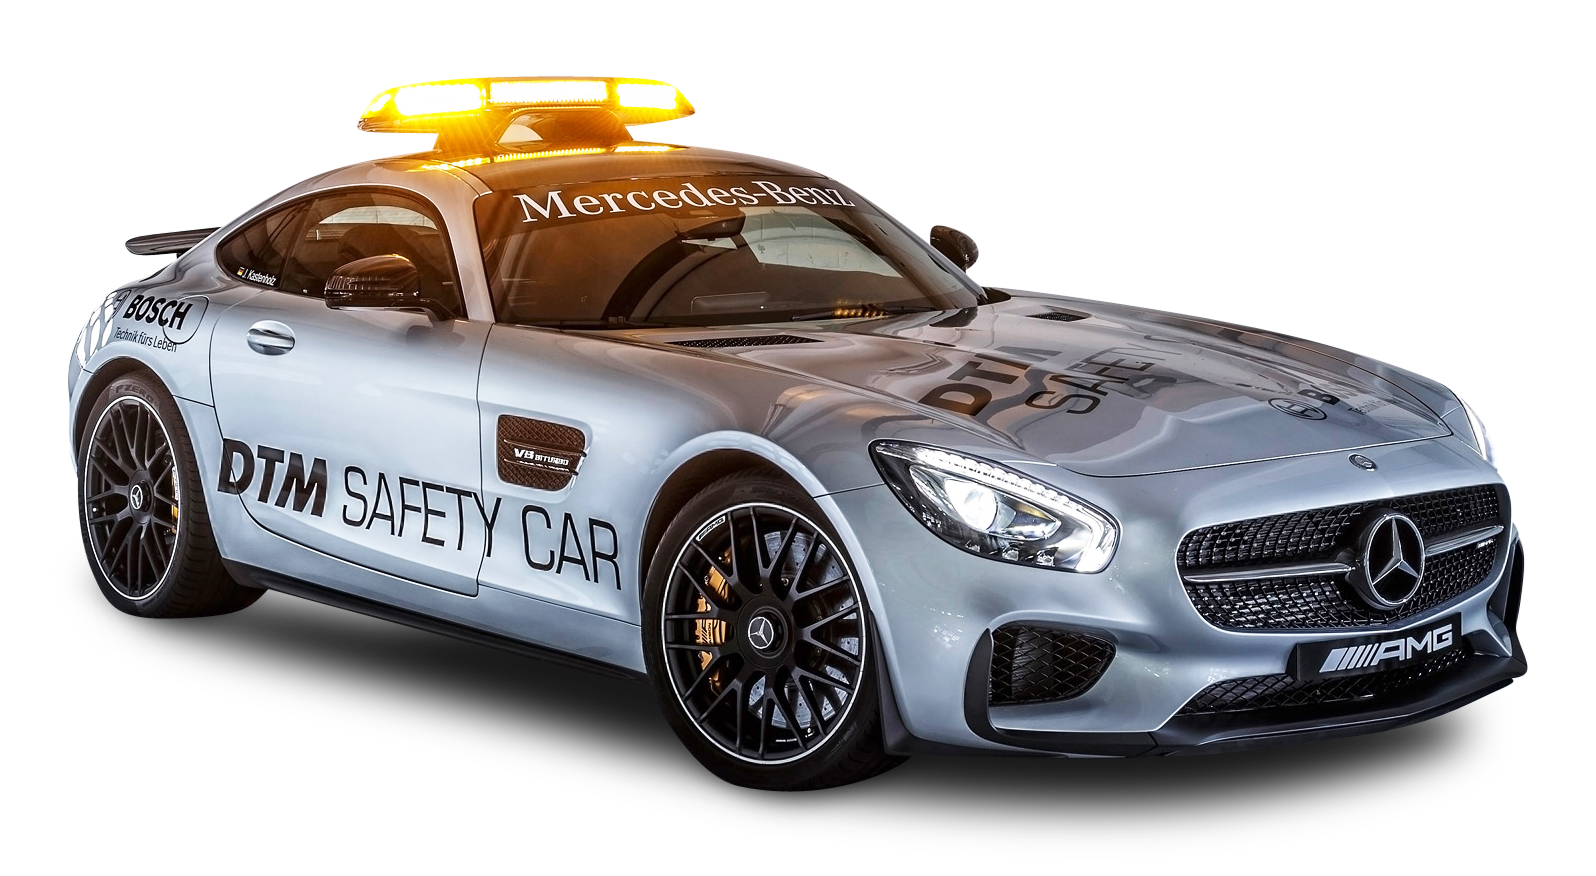 Gray Mercedes AMG GTS Safety Car